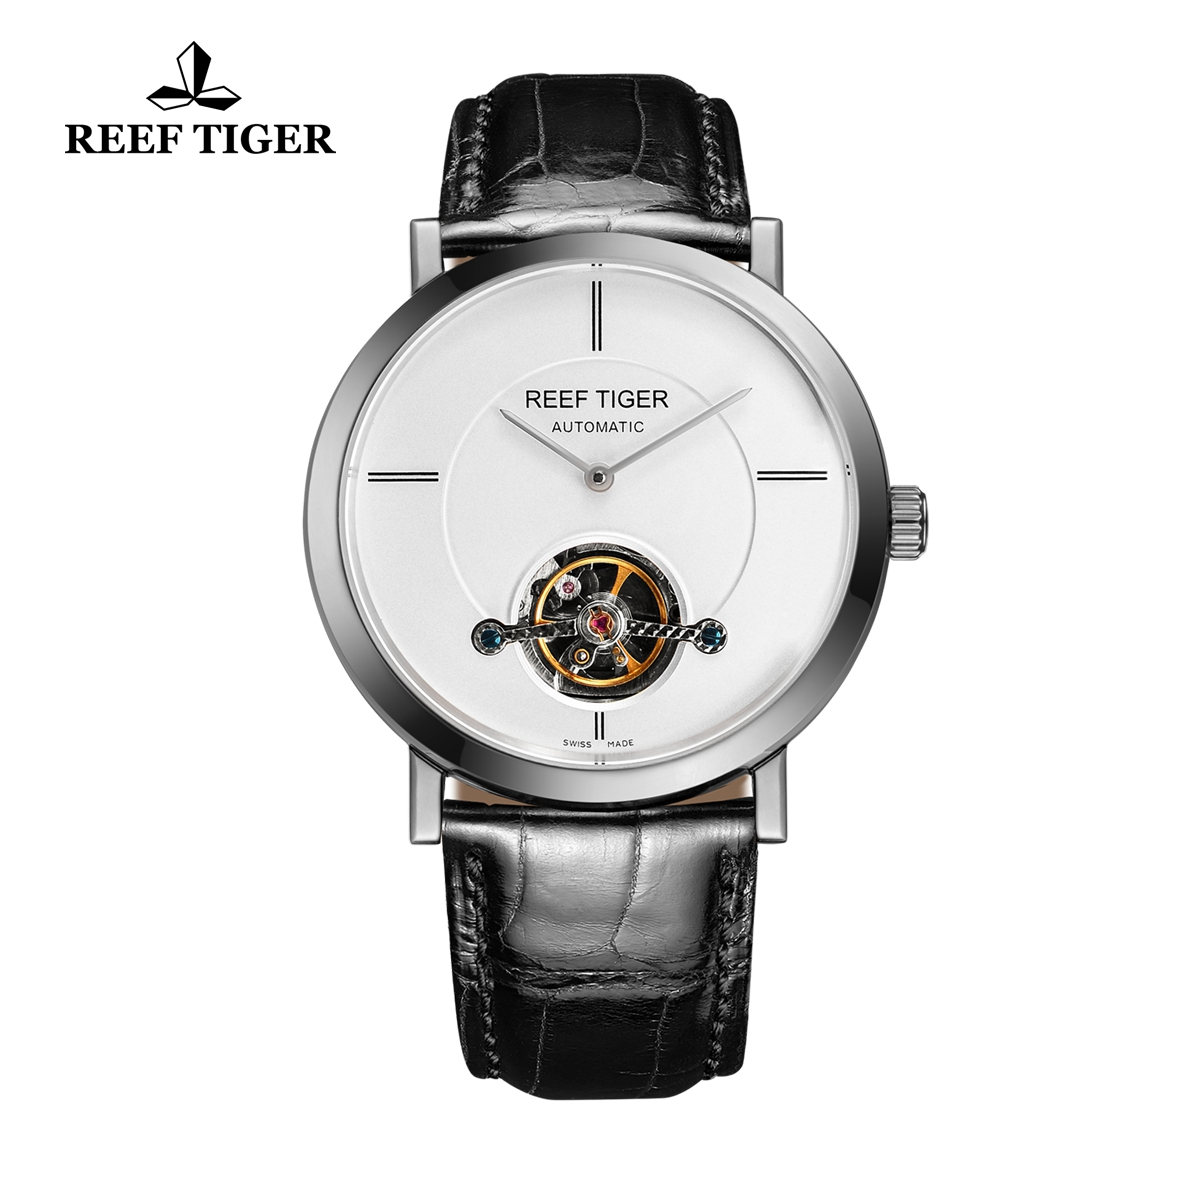 Reef Tiger Business Watch Stainless Steel White Dial Automatic Tourbillon Watch RGA1610-YWB